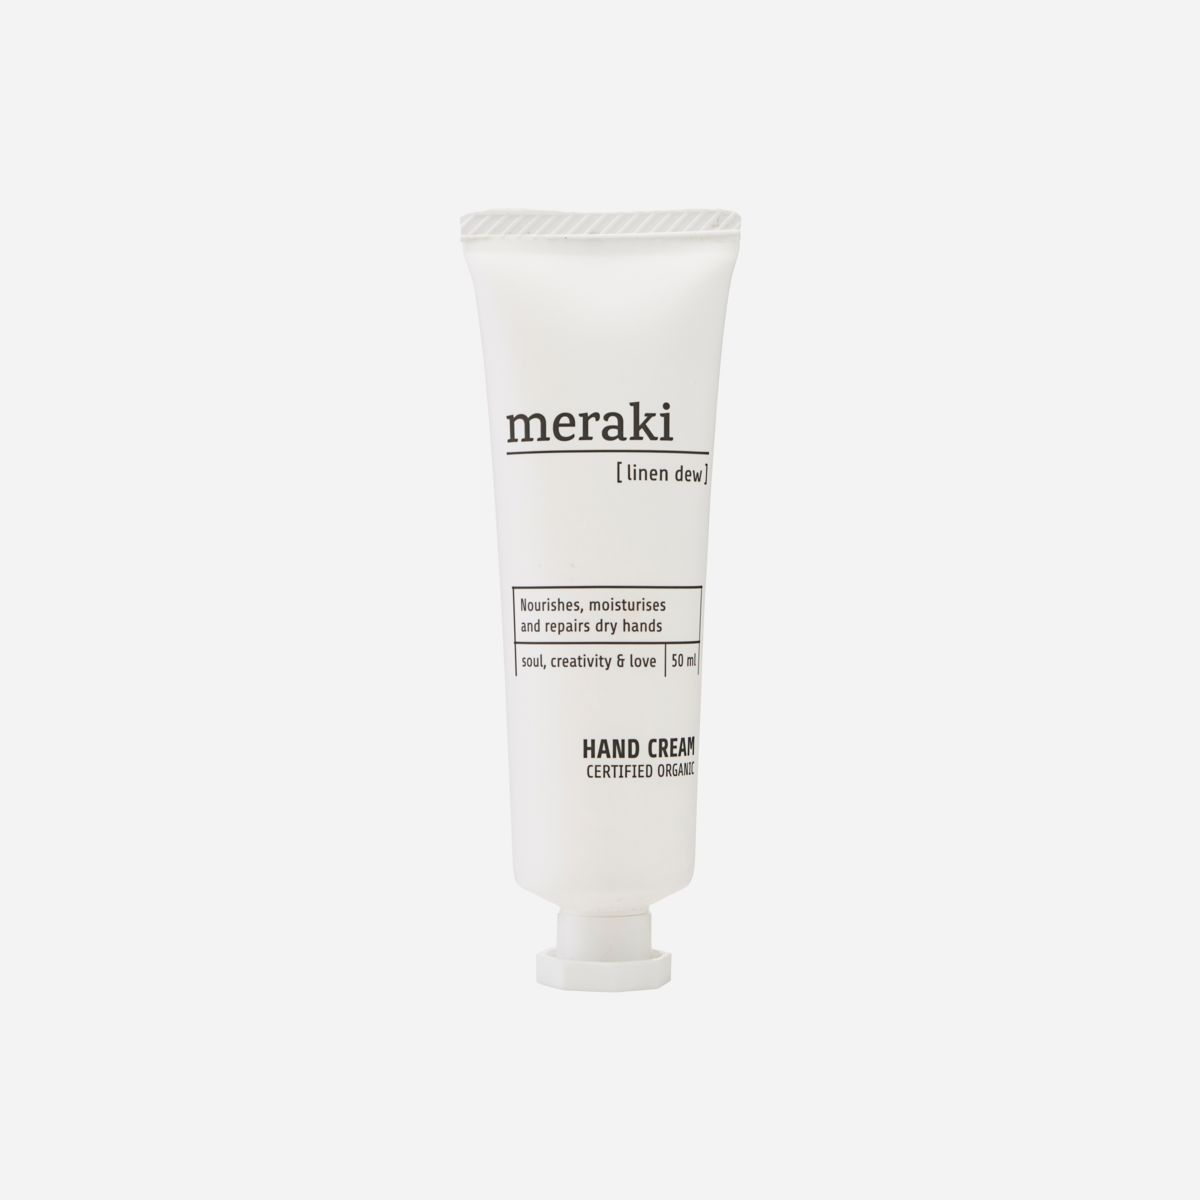 Meraki håndlotion linen dew 50 ml